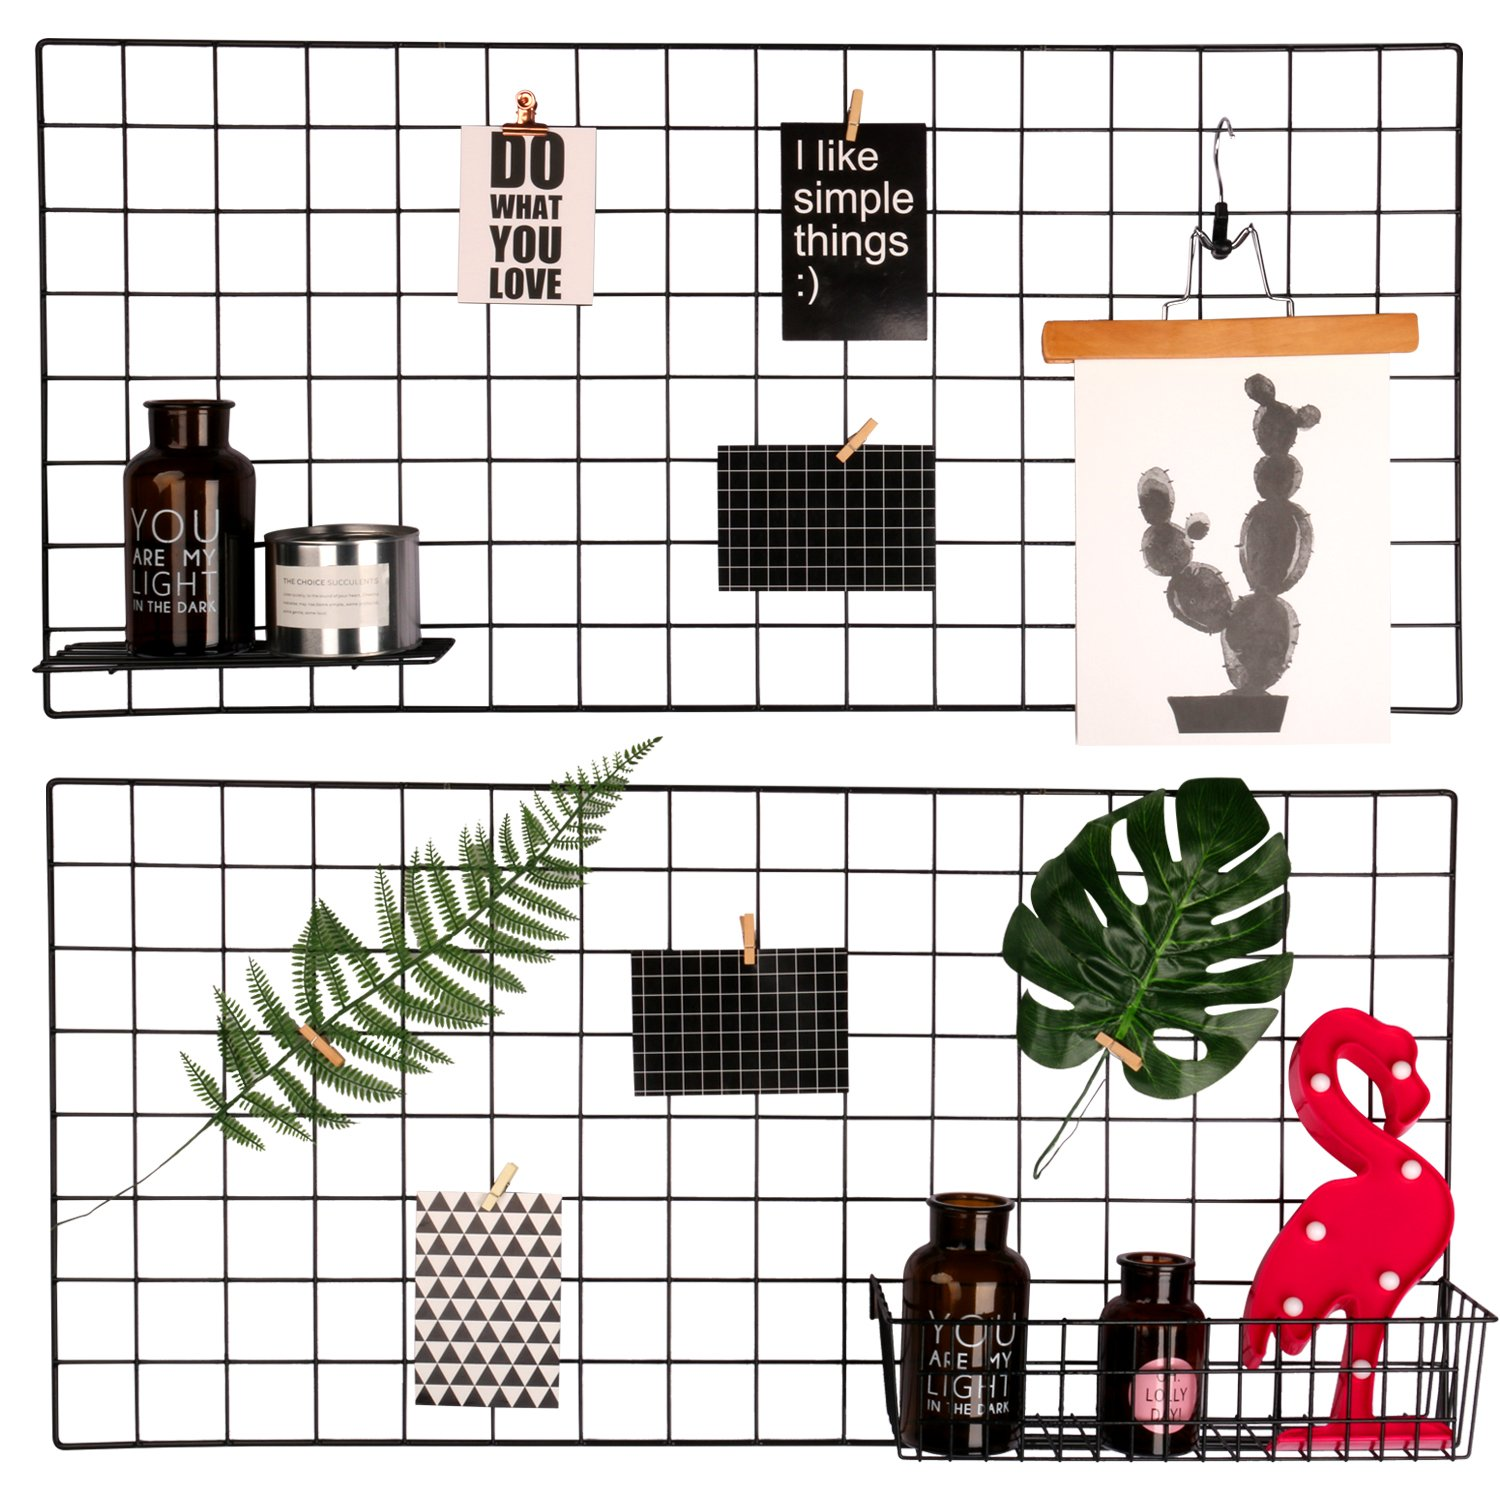 hosaken Multifunction Grid Panel,Wall Decor/Sculptural Frames & Holders/Wall Display/Organizer, Pack of 2 Pcs, Size:15.7'' x 31.5'' / 40 x 80 cm,Black by hosaken